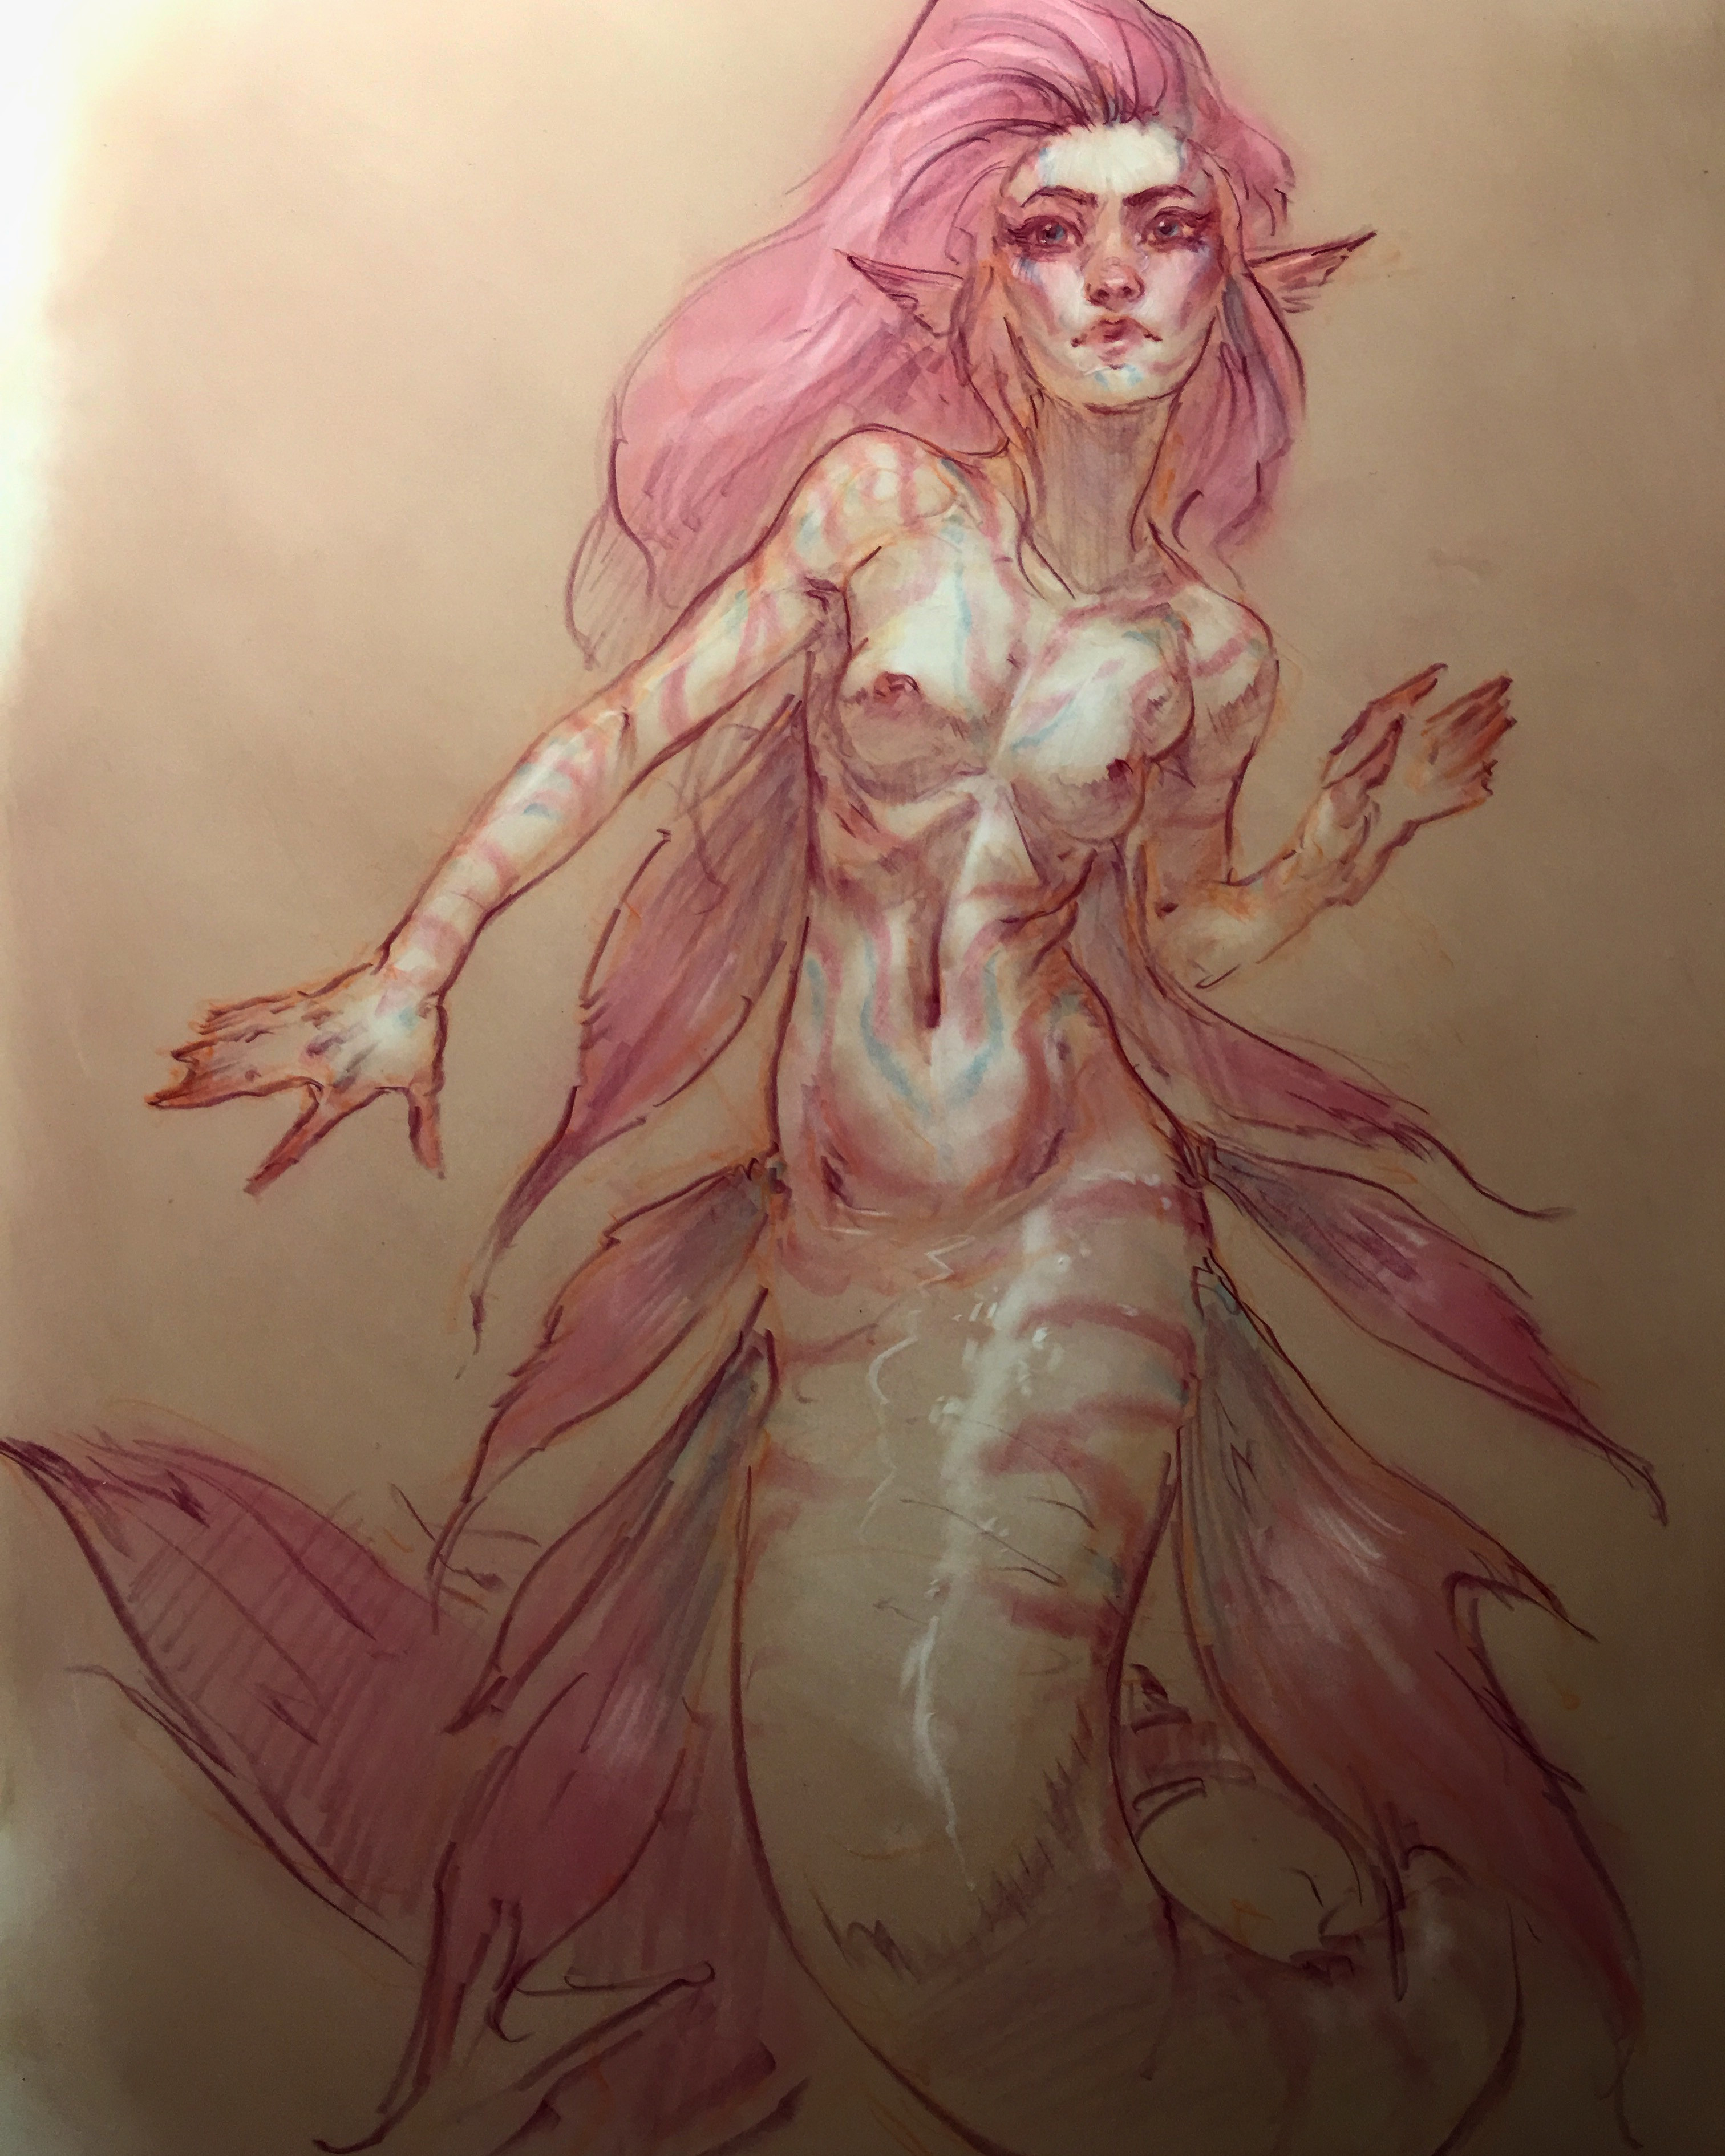 More MerMay! Prismacolor pencils on Dura-lene acetate.